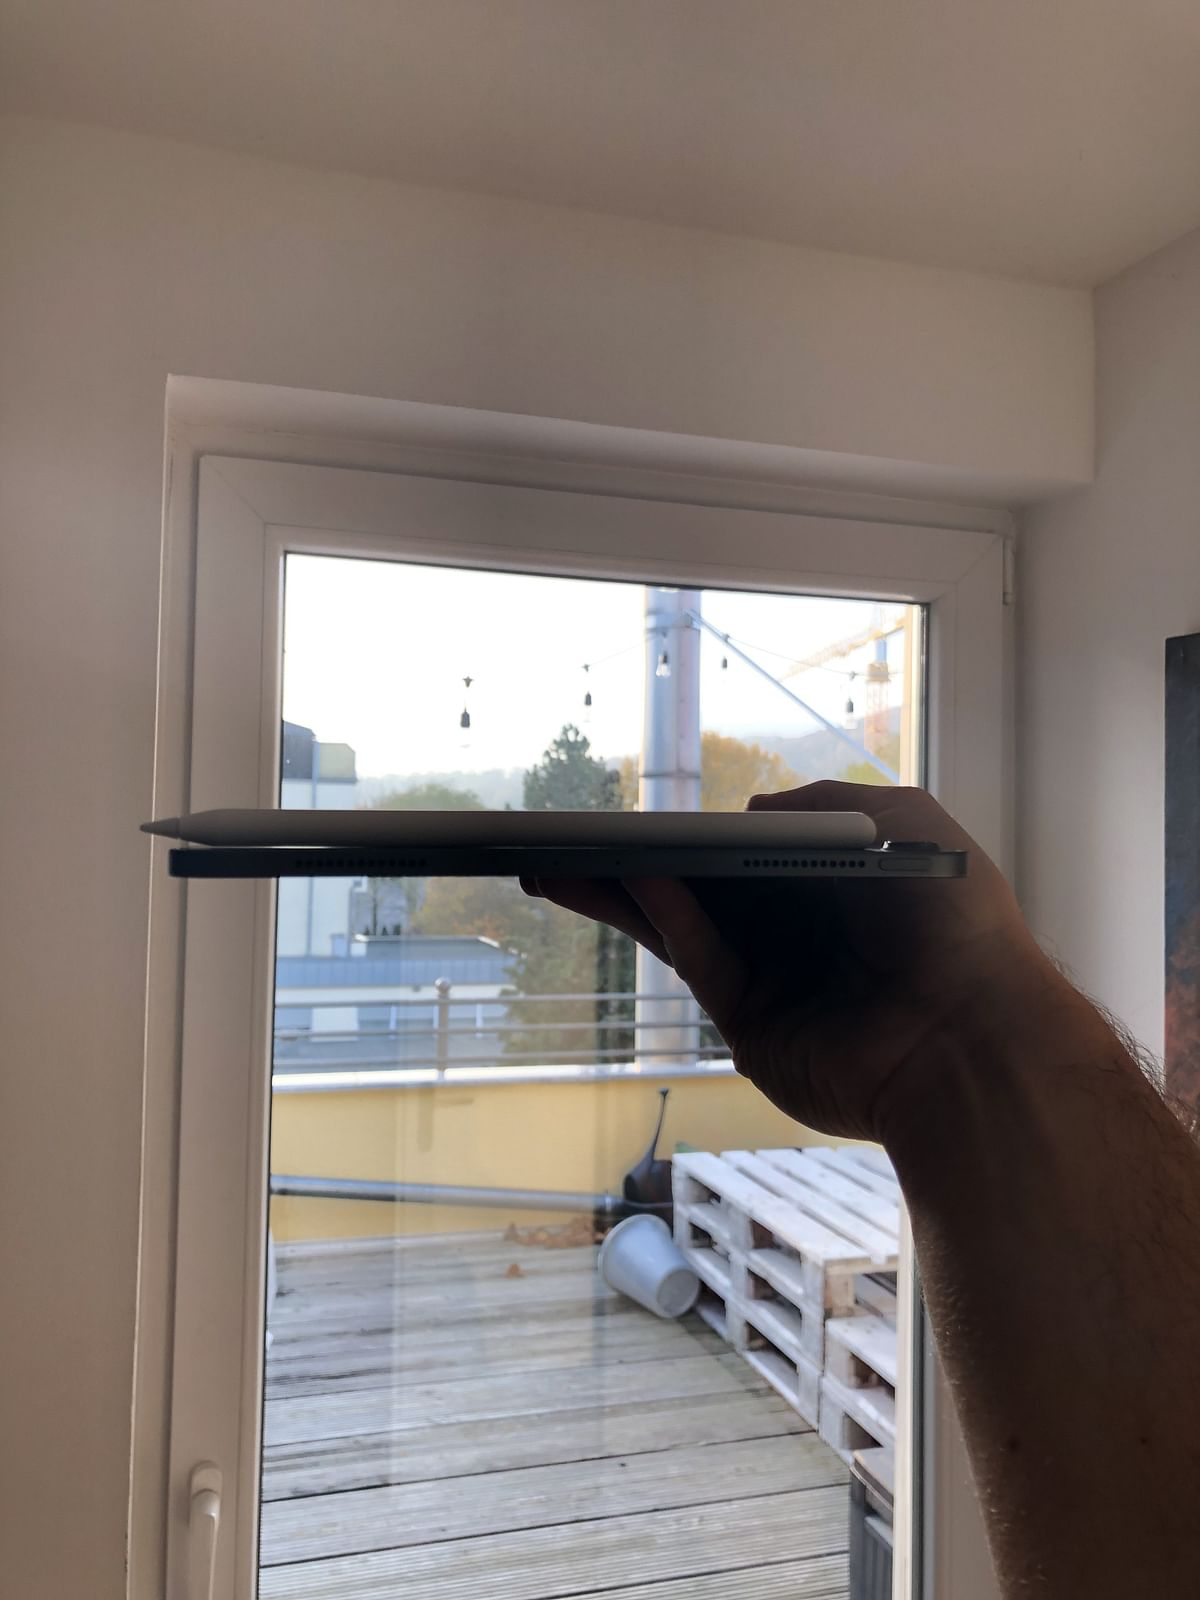 The user who said that he got a bent iPad Pro out of the box.